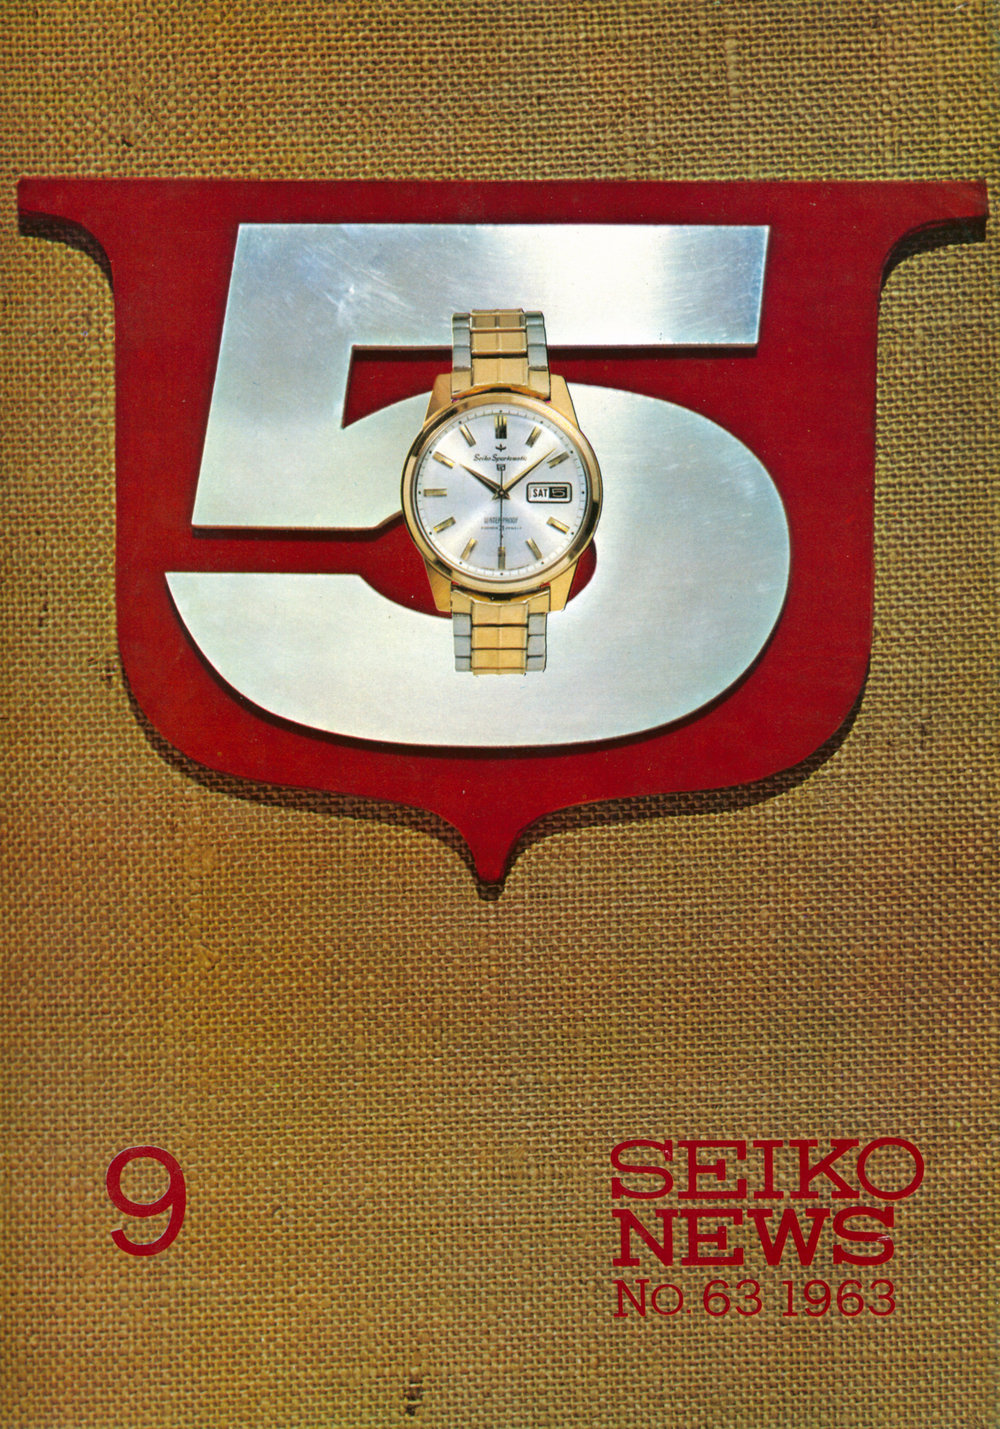 1963.09 Seiko News Cover